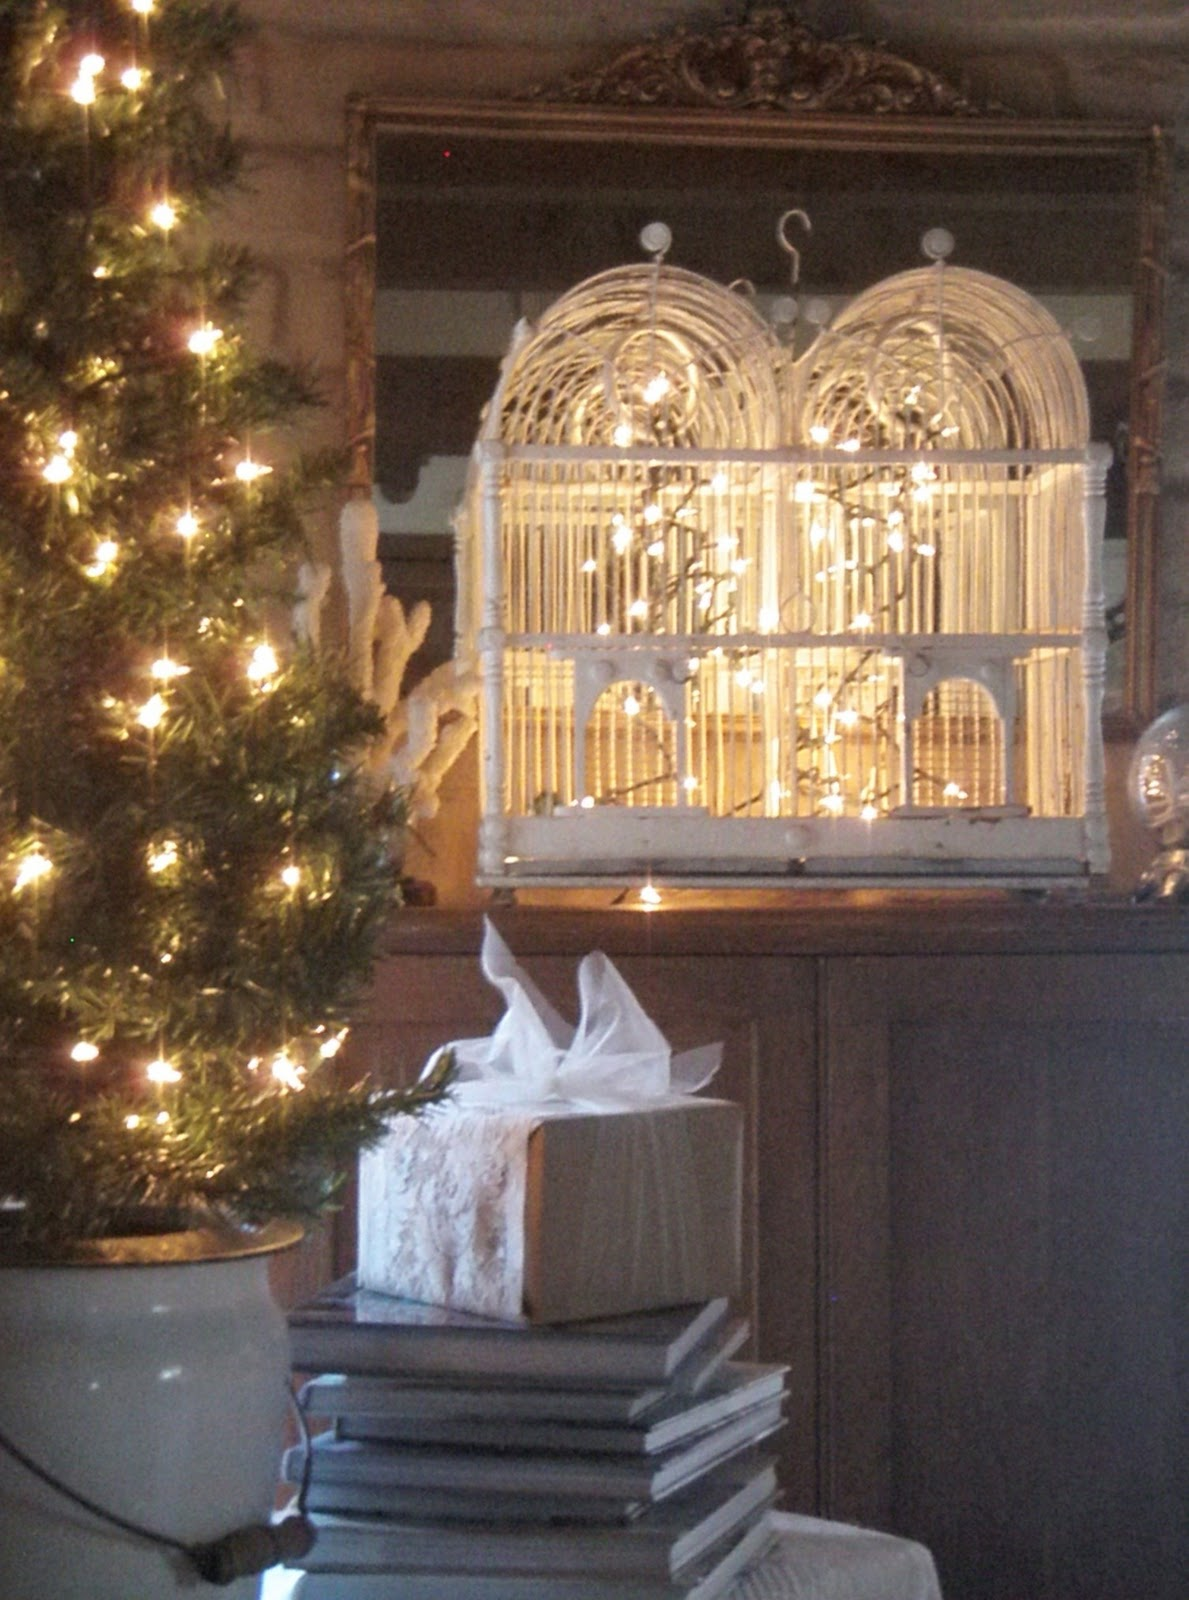 Our hopeful home christmas decorating with vintage birdcages for Christmas decorations indoor